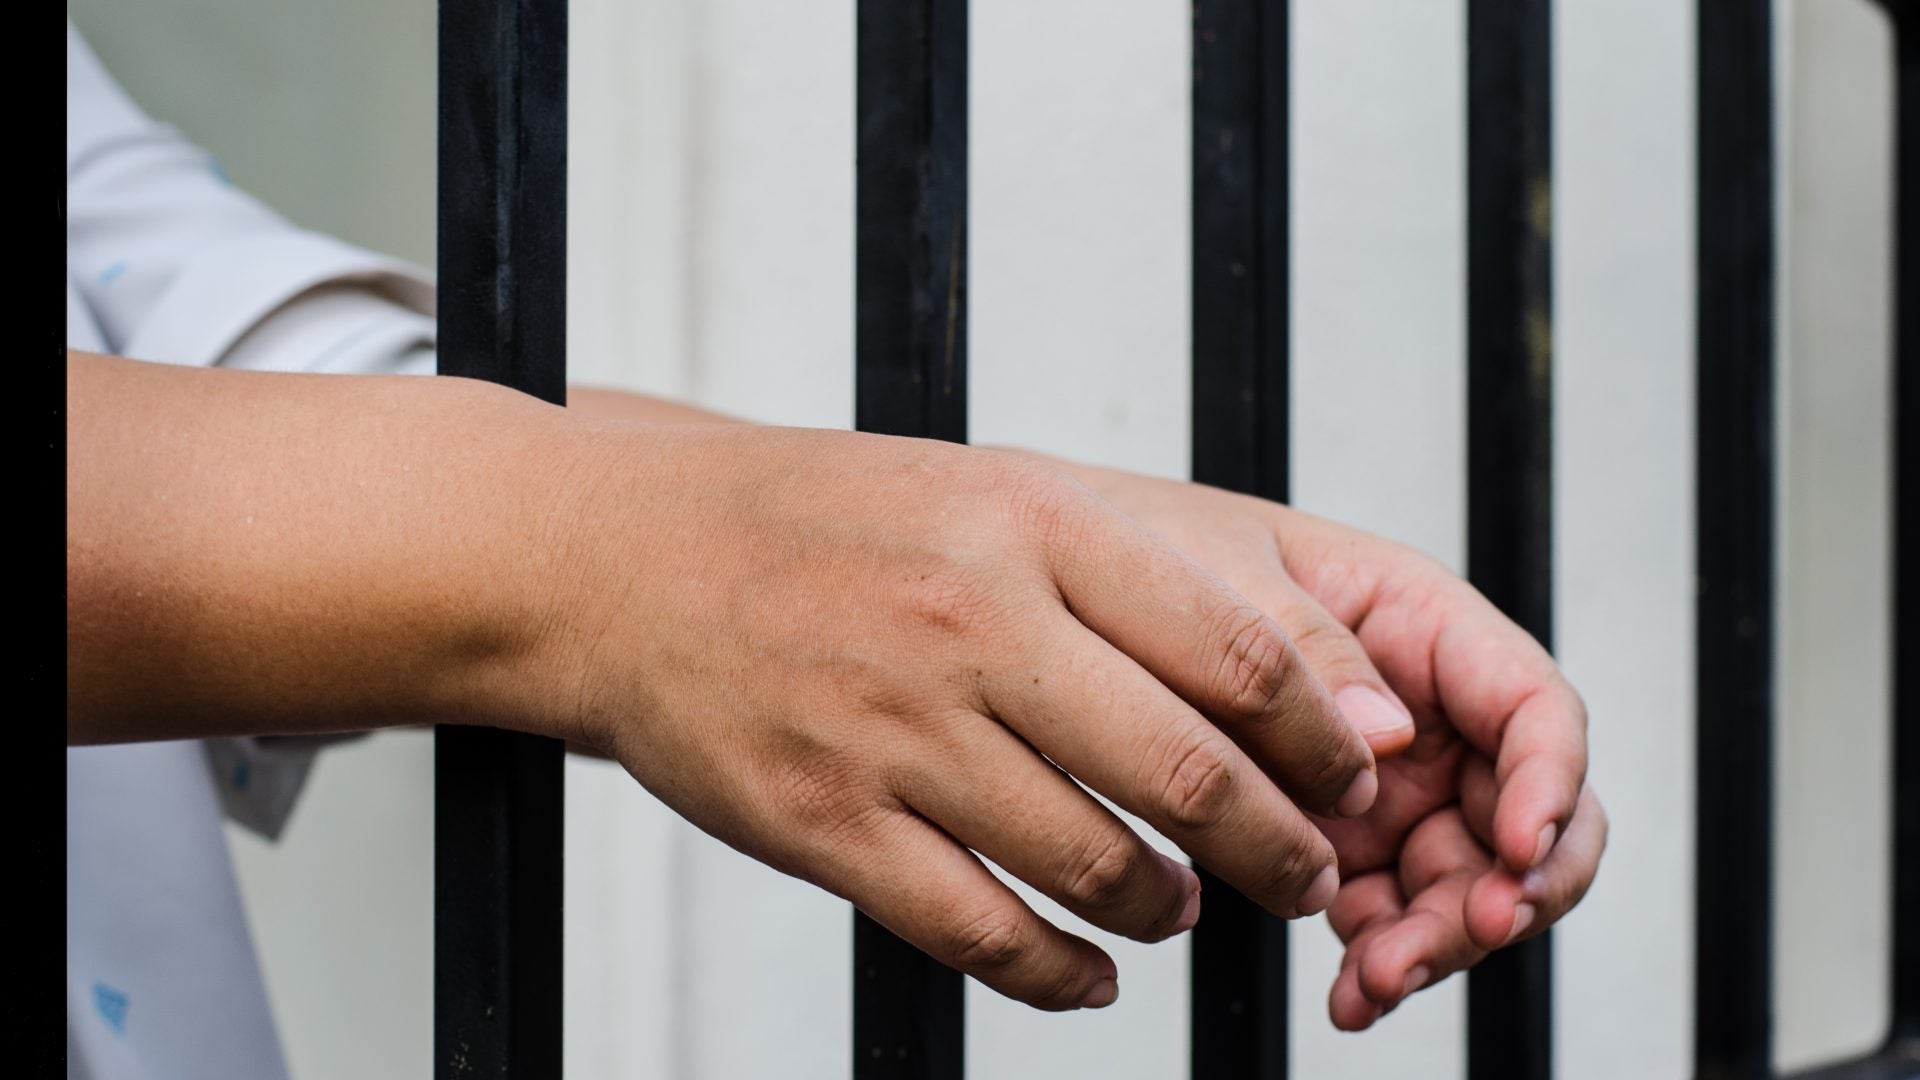 Woman Sues After Giving Birth Alone In Jail Cell